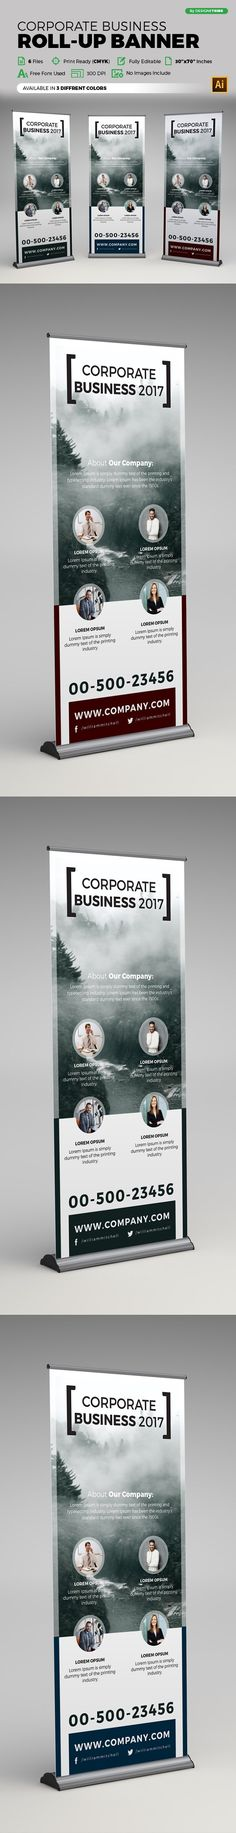 Corporate Roll Up Banner by Design'sTRIBE on @creativemarket